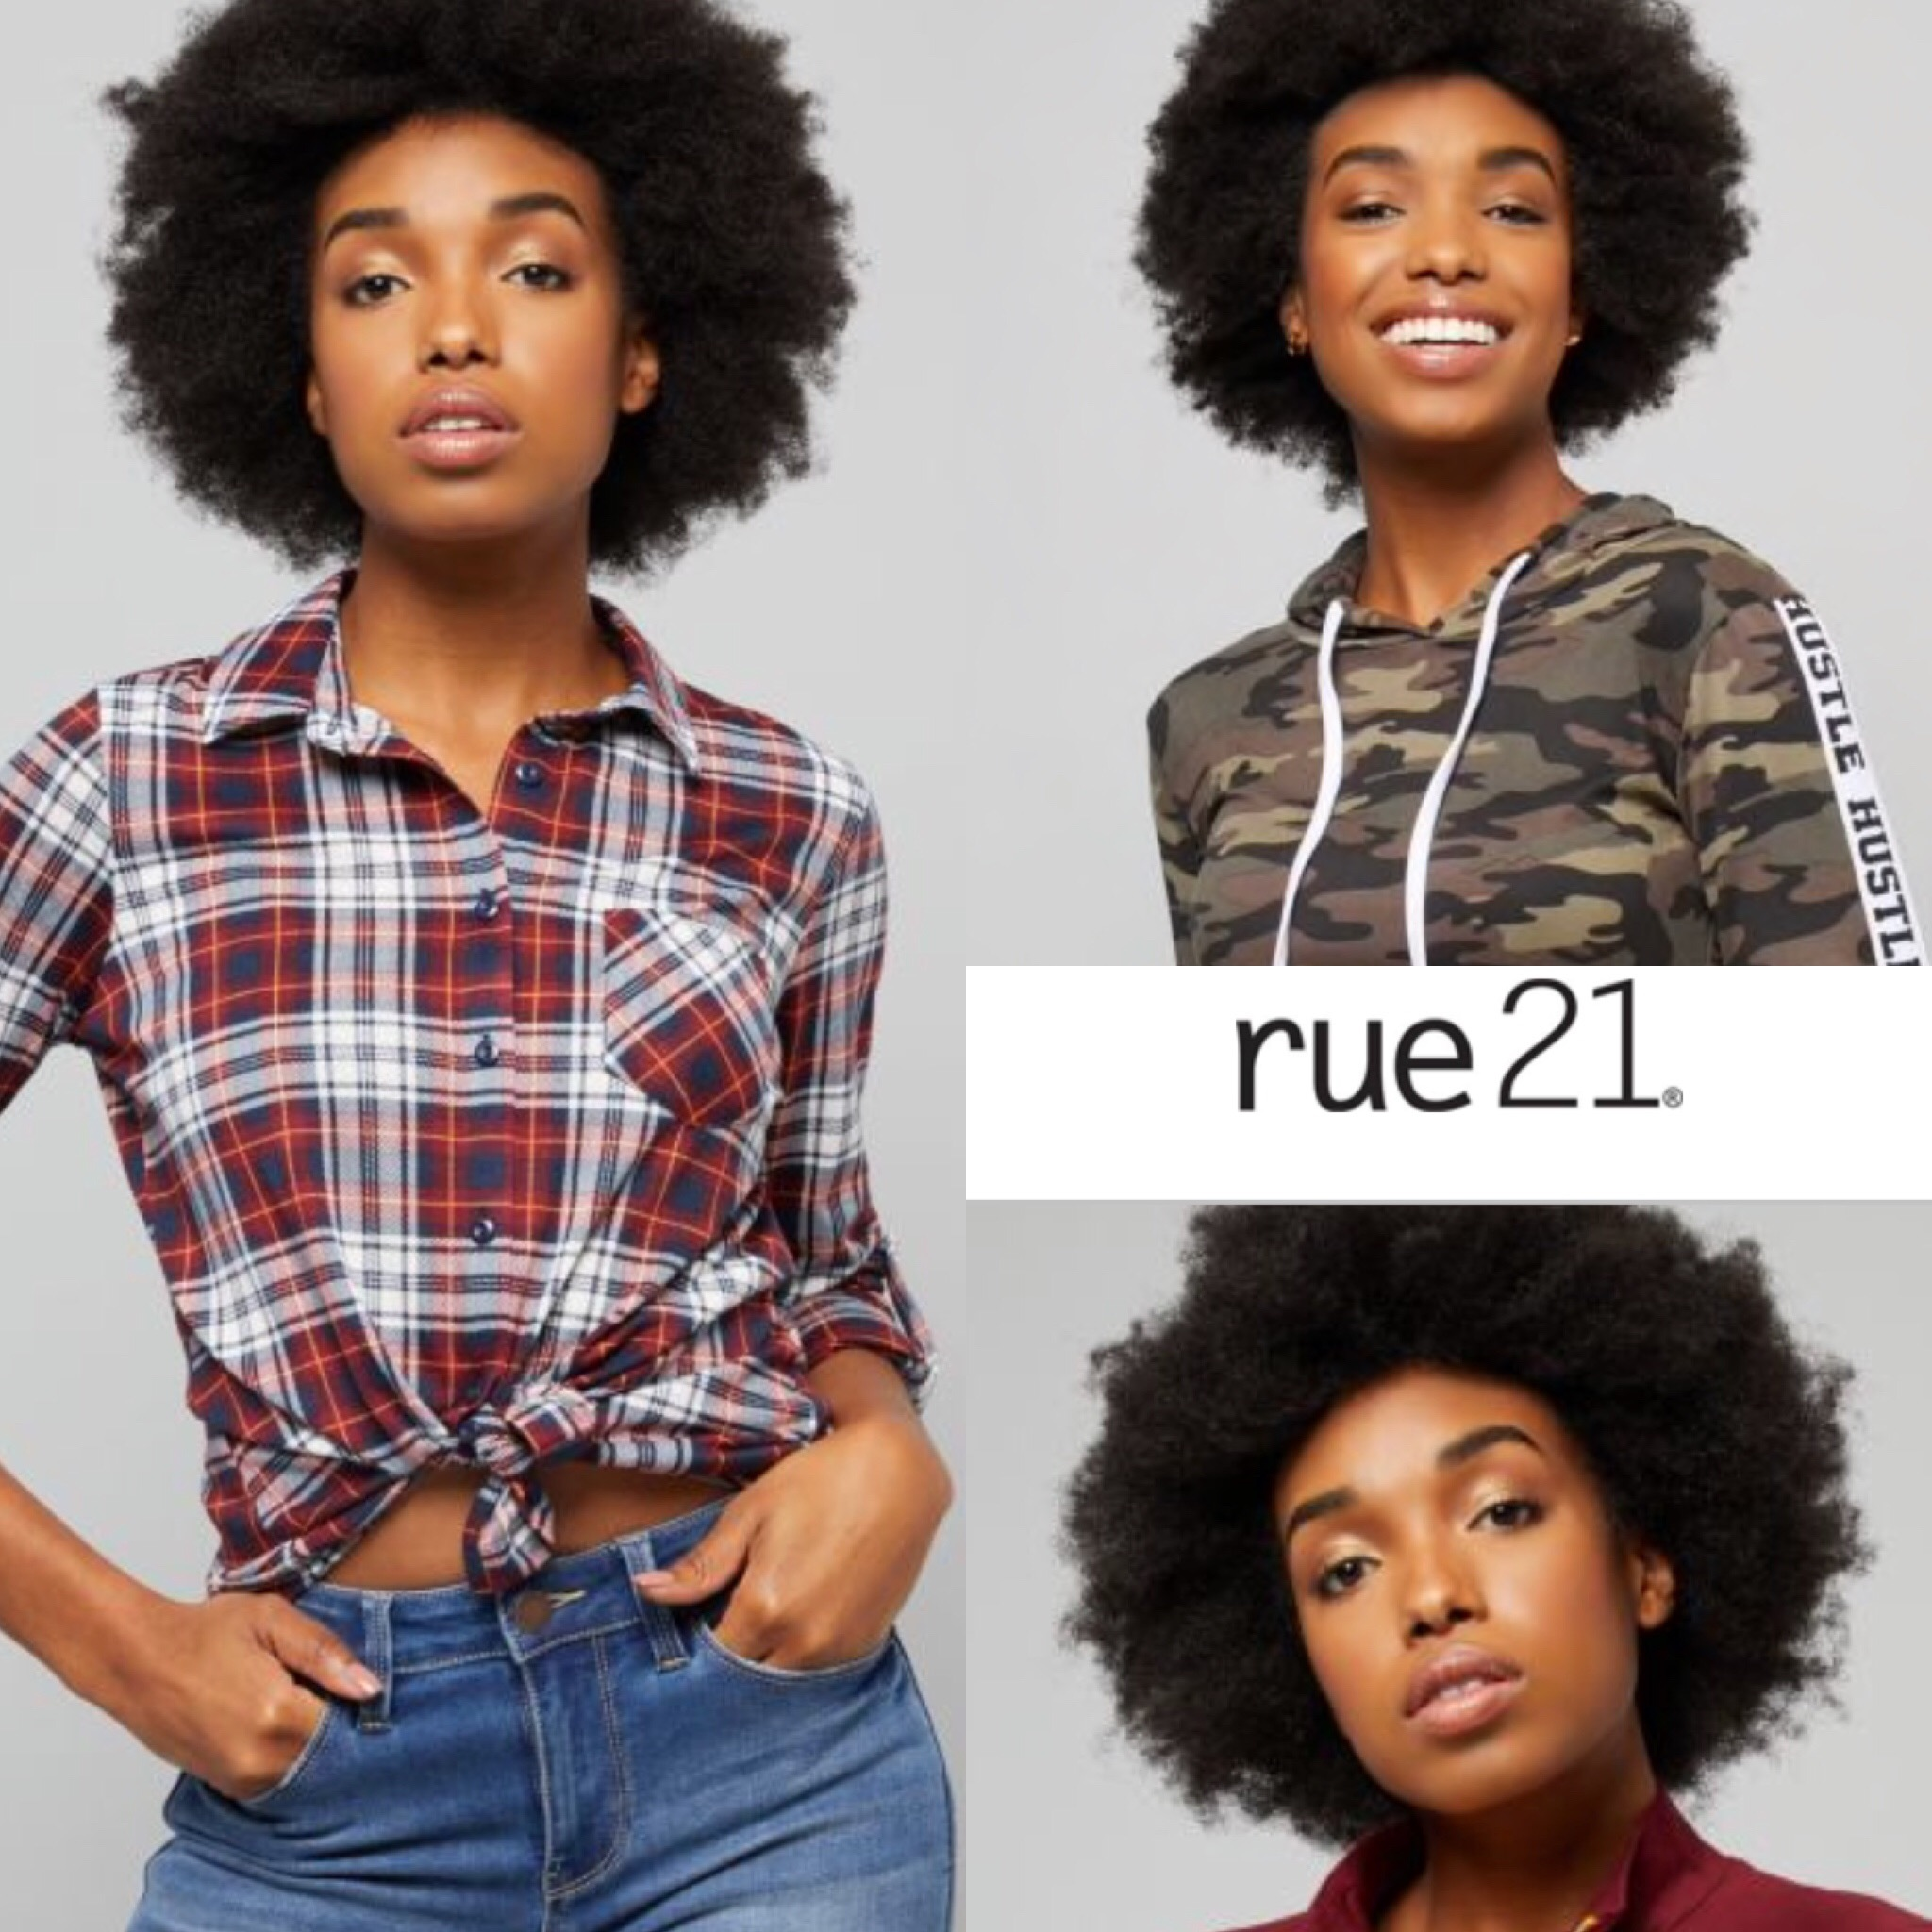 Makeup/Hair for Rue21